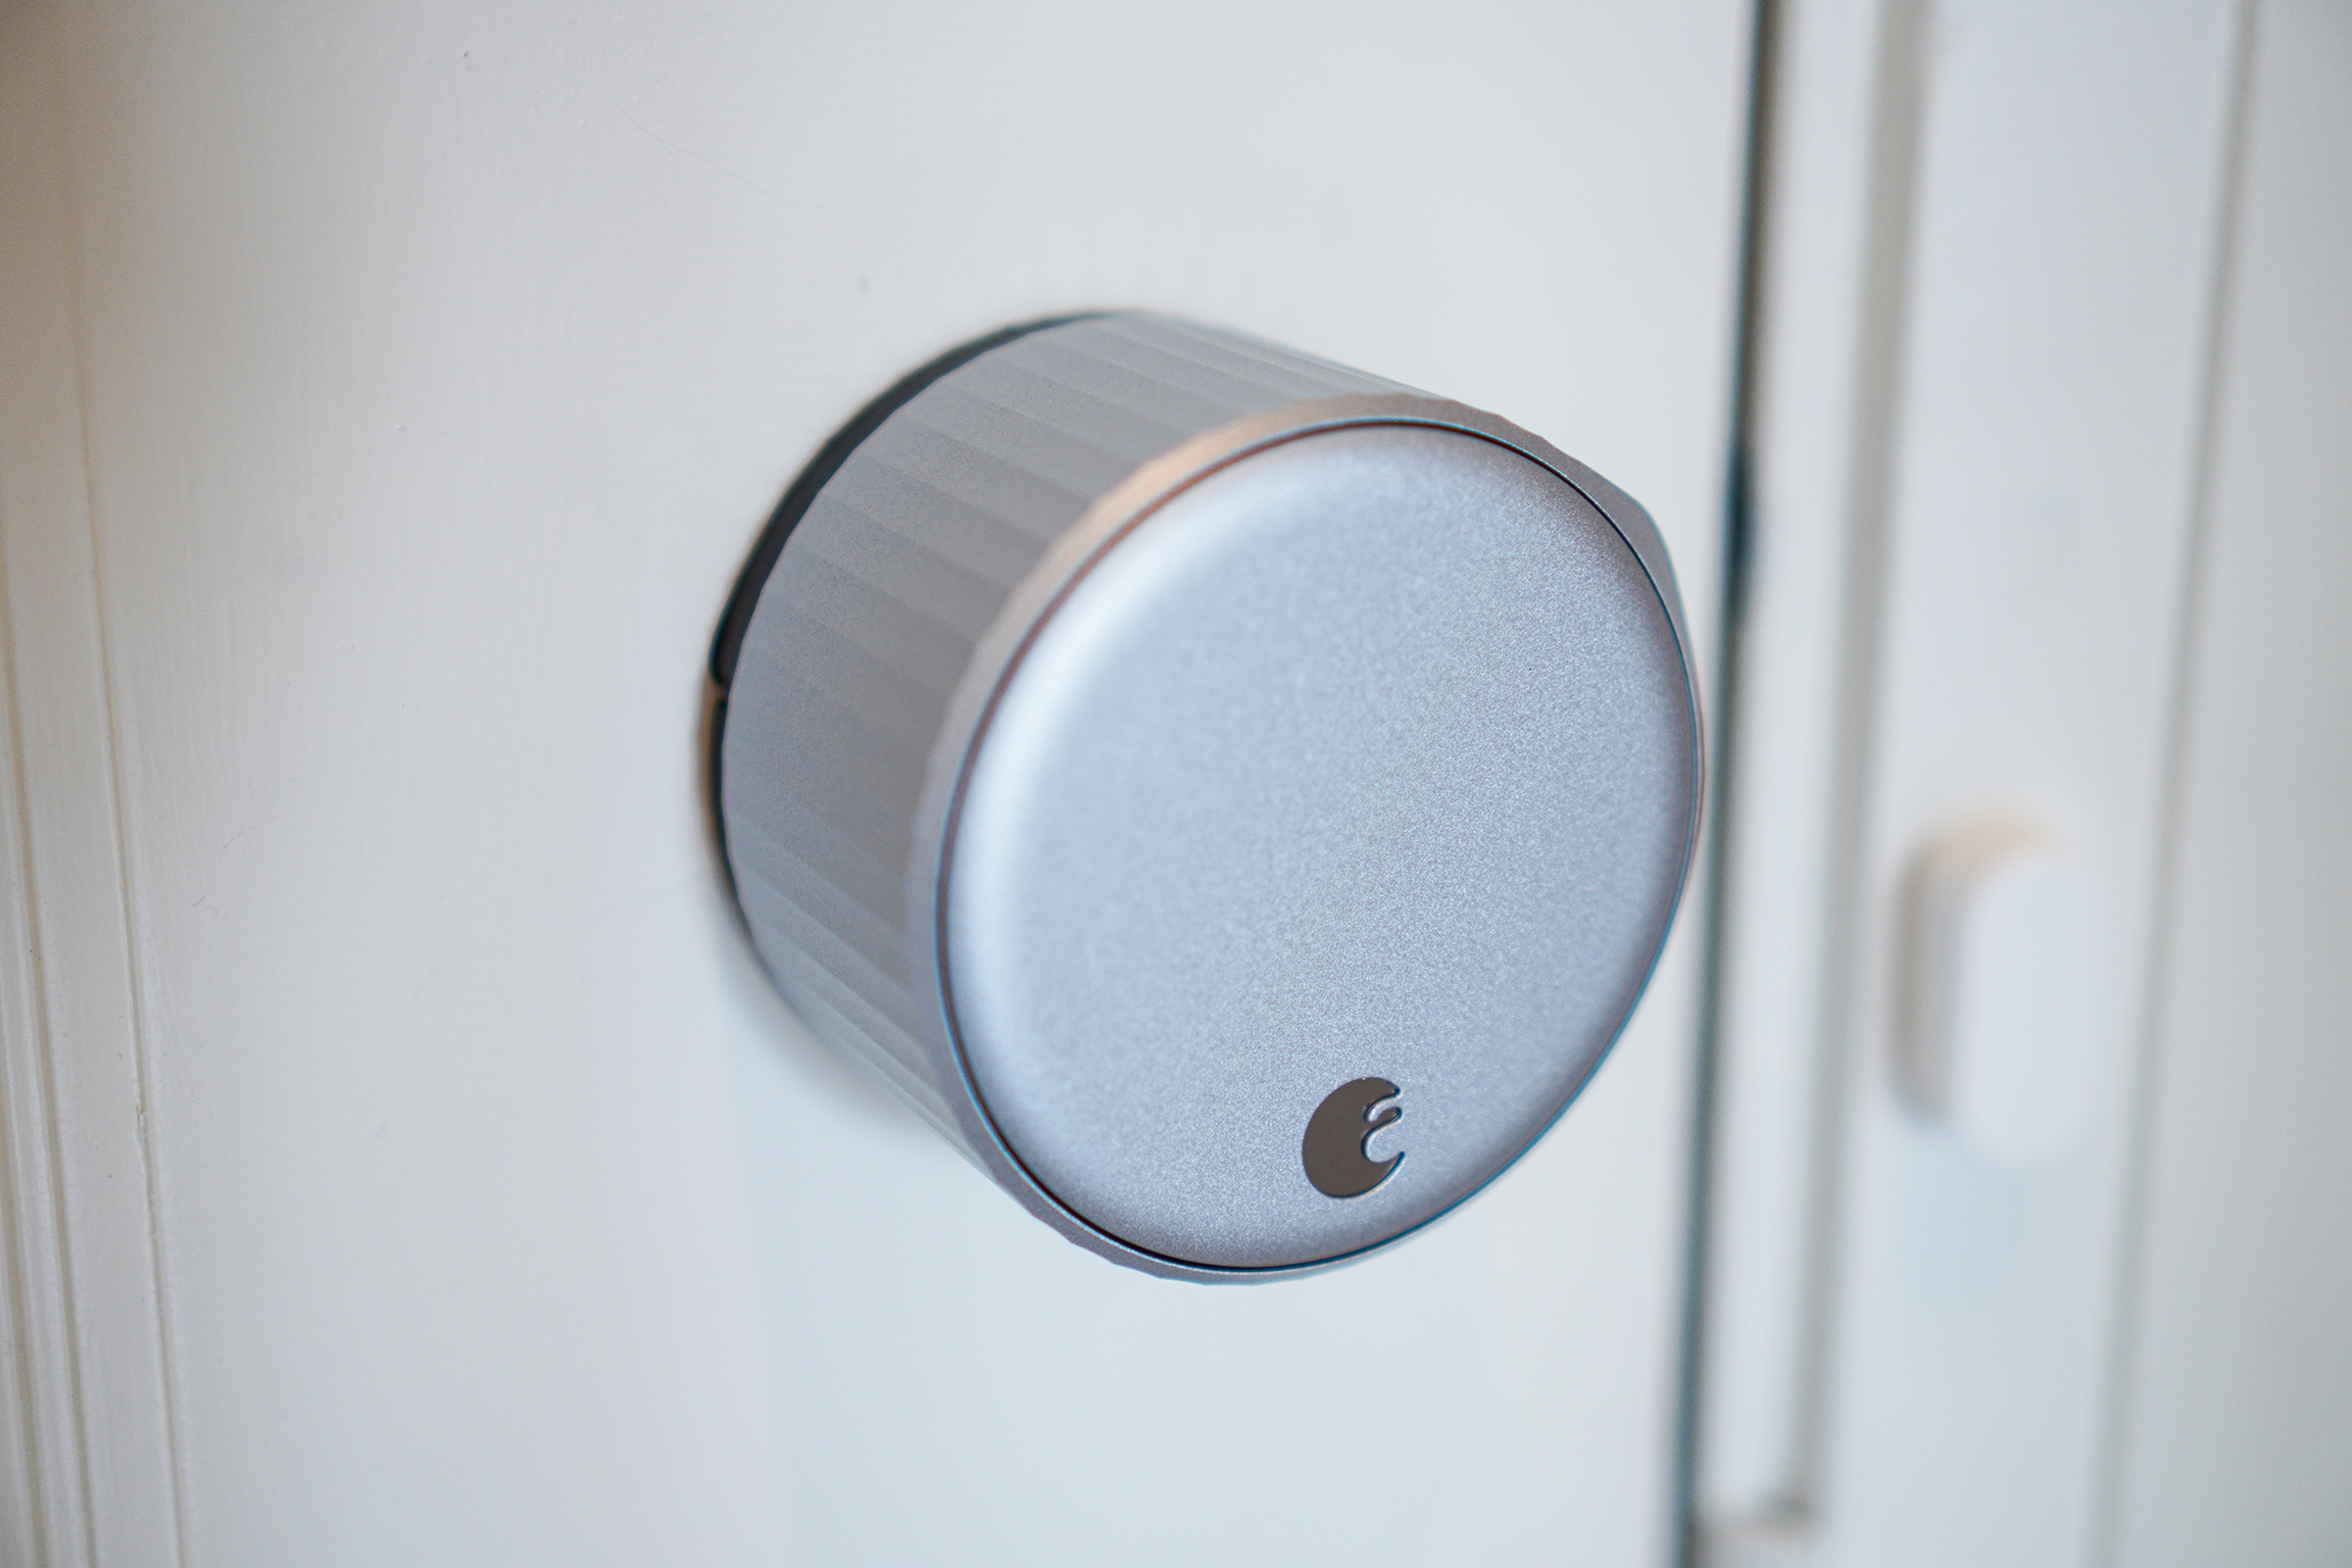 The new August Wi-Fi Smart Lock is now available, and it's the connected smart lock to beat 5